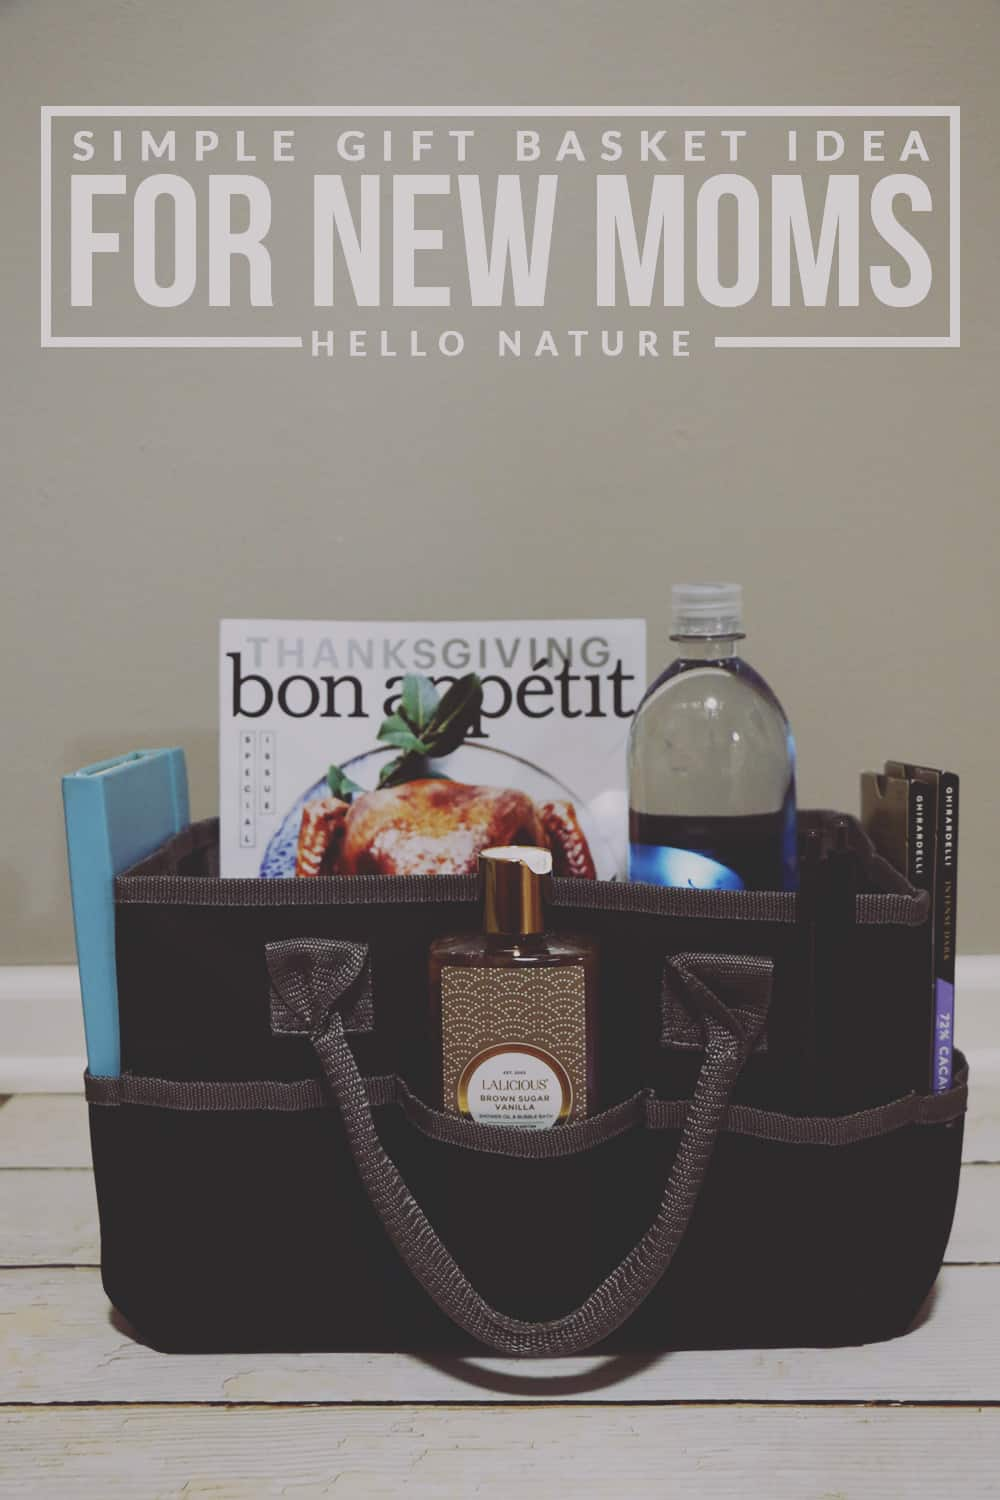 This simple gift basket idea for new moms is the perfect way to show a mother-to-be or new mother that you care!